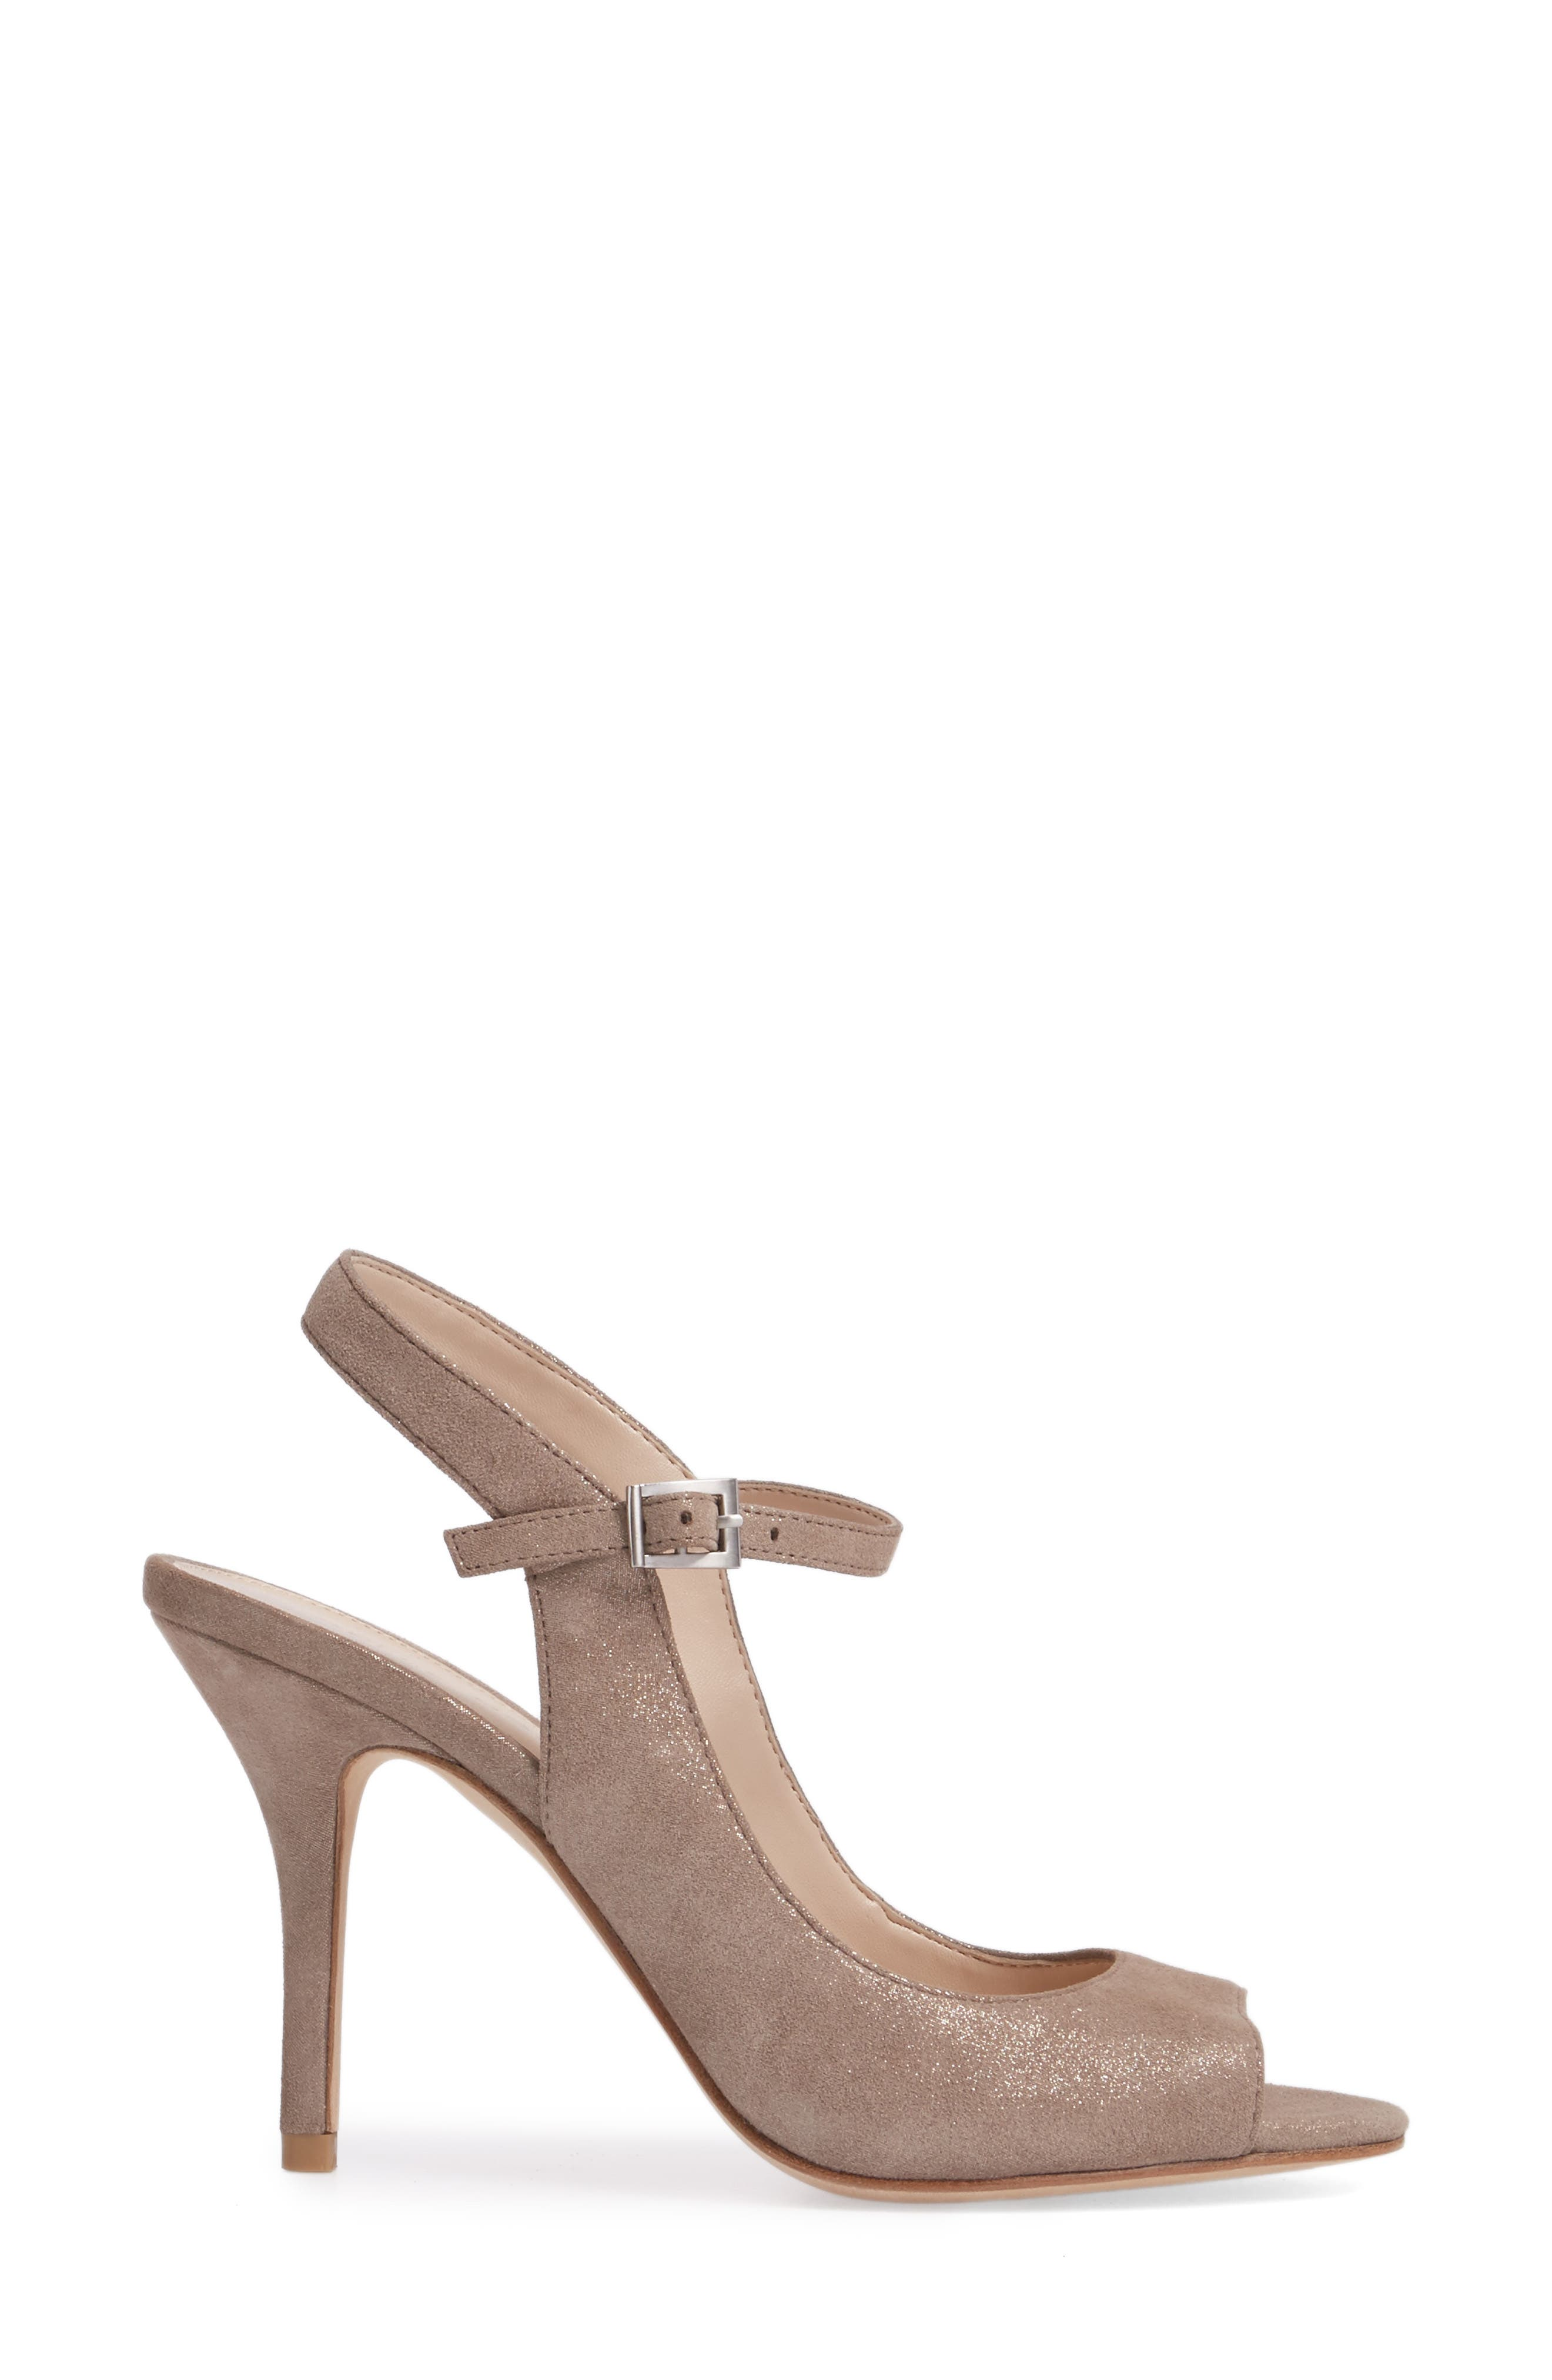 Kinsey Sandal,                             Alternate thumbnail 3, color,                             Taupe Leather